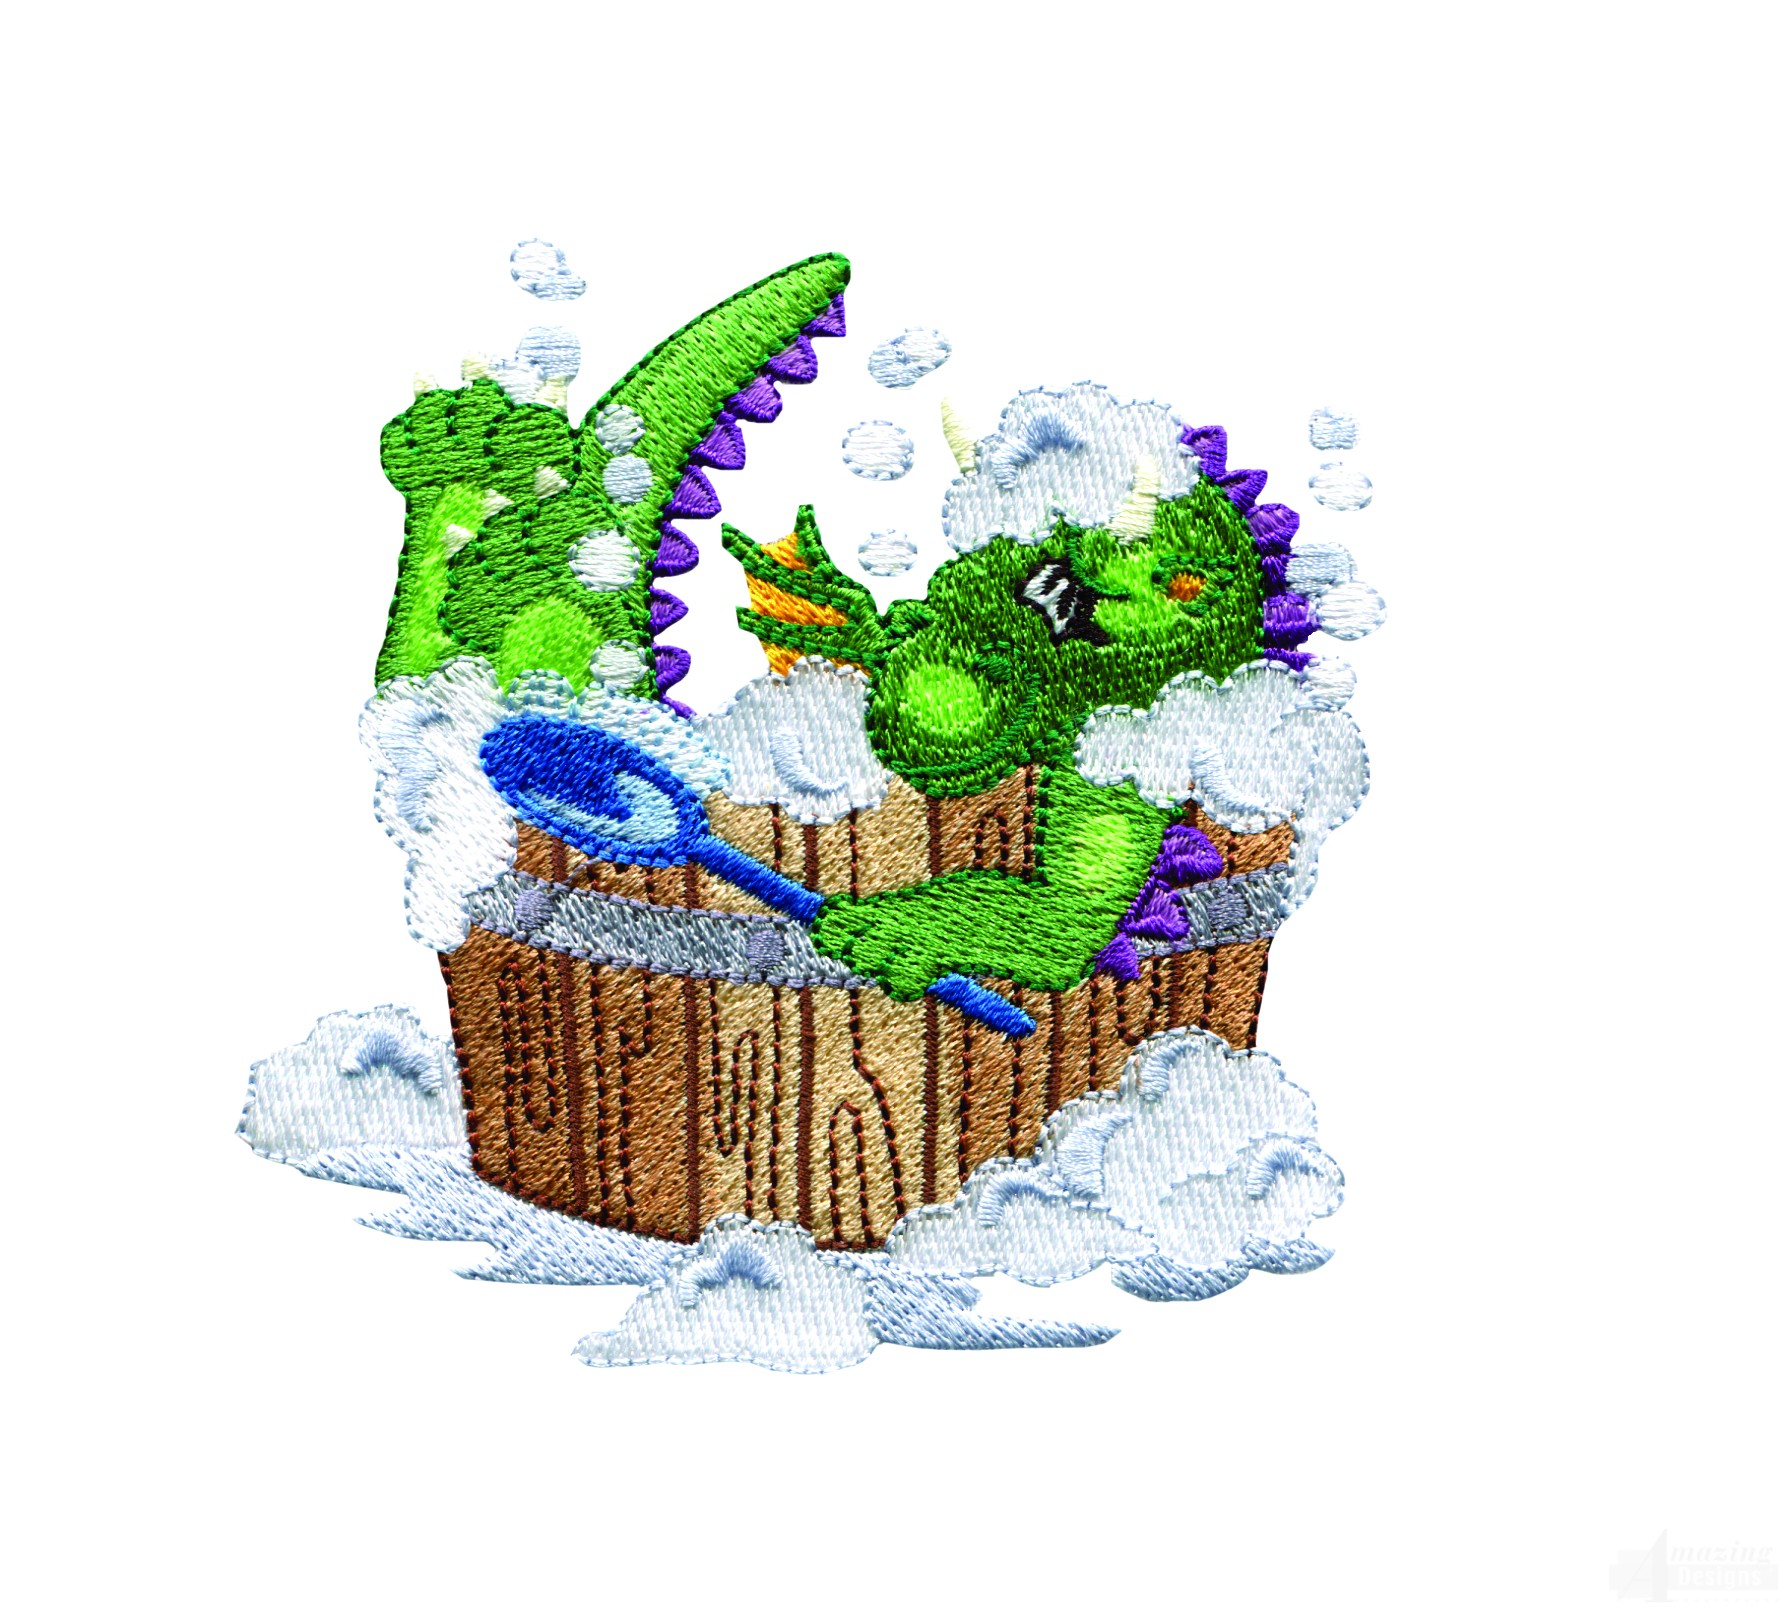 Bath time dragon embroidery design for Bathroom embroidery designs